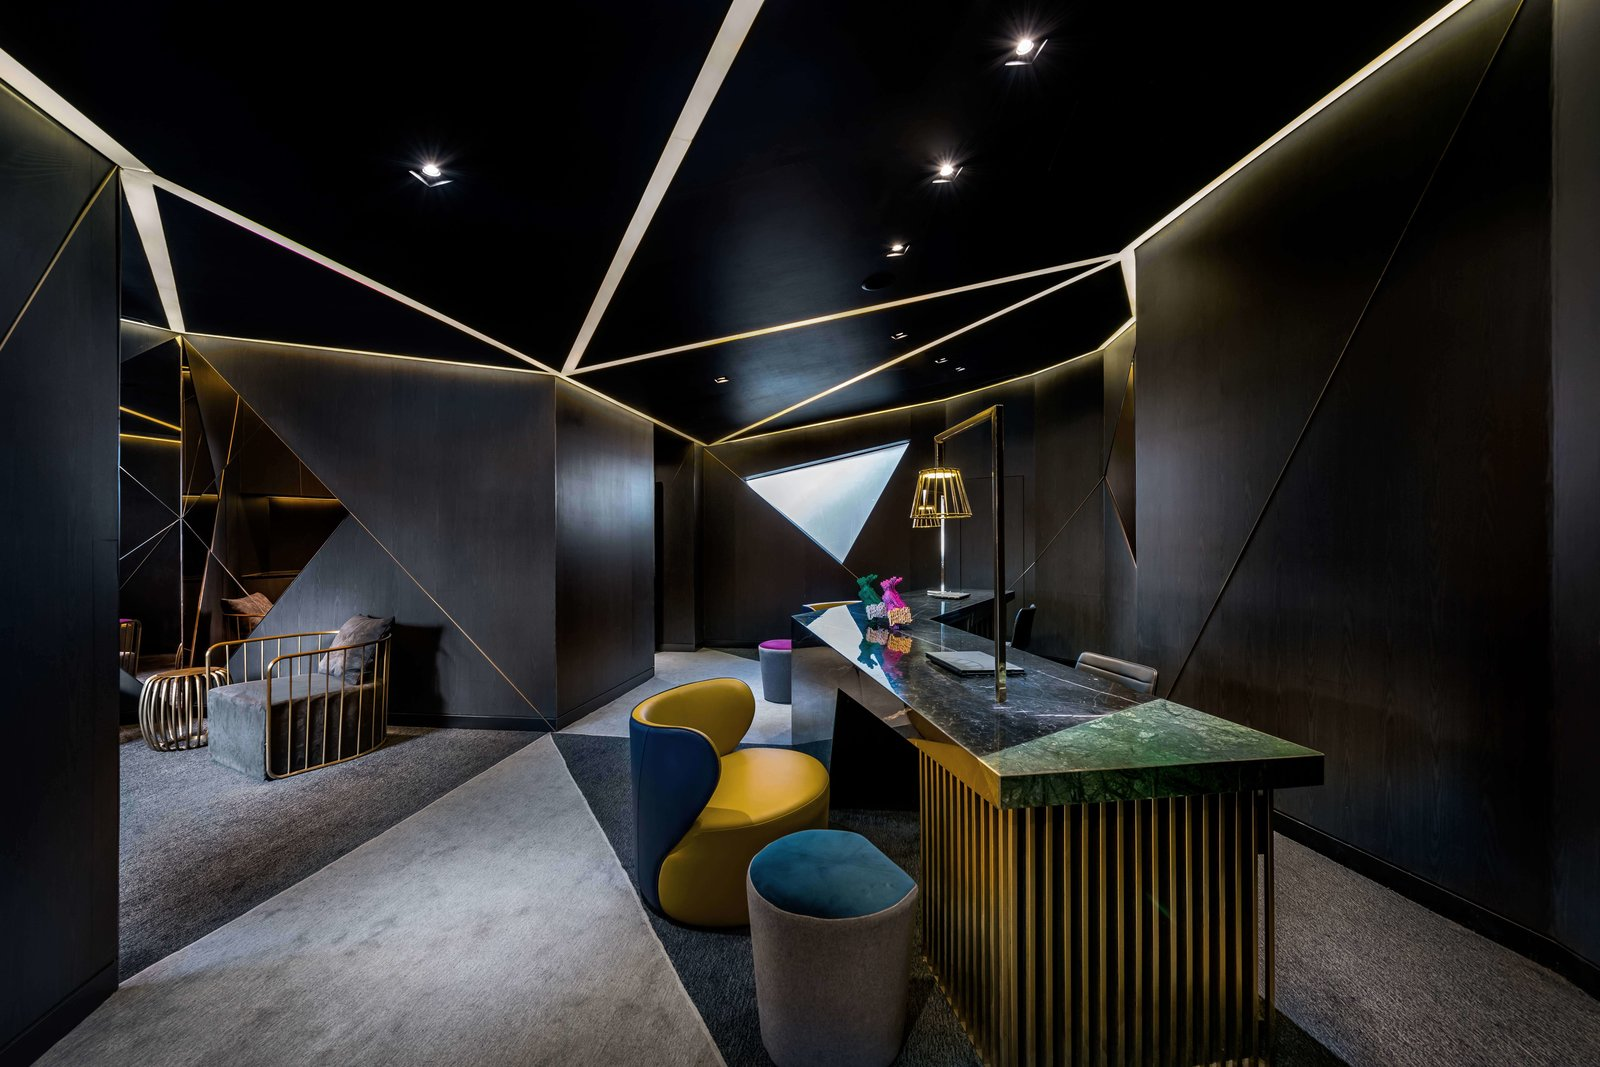 Office, Desk, Carpet Floor, and Chair  Vue Hotel Hou Hai from A Hotel in Beijing Fuses Chinese History With Cosmopolitan Style